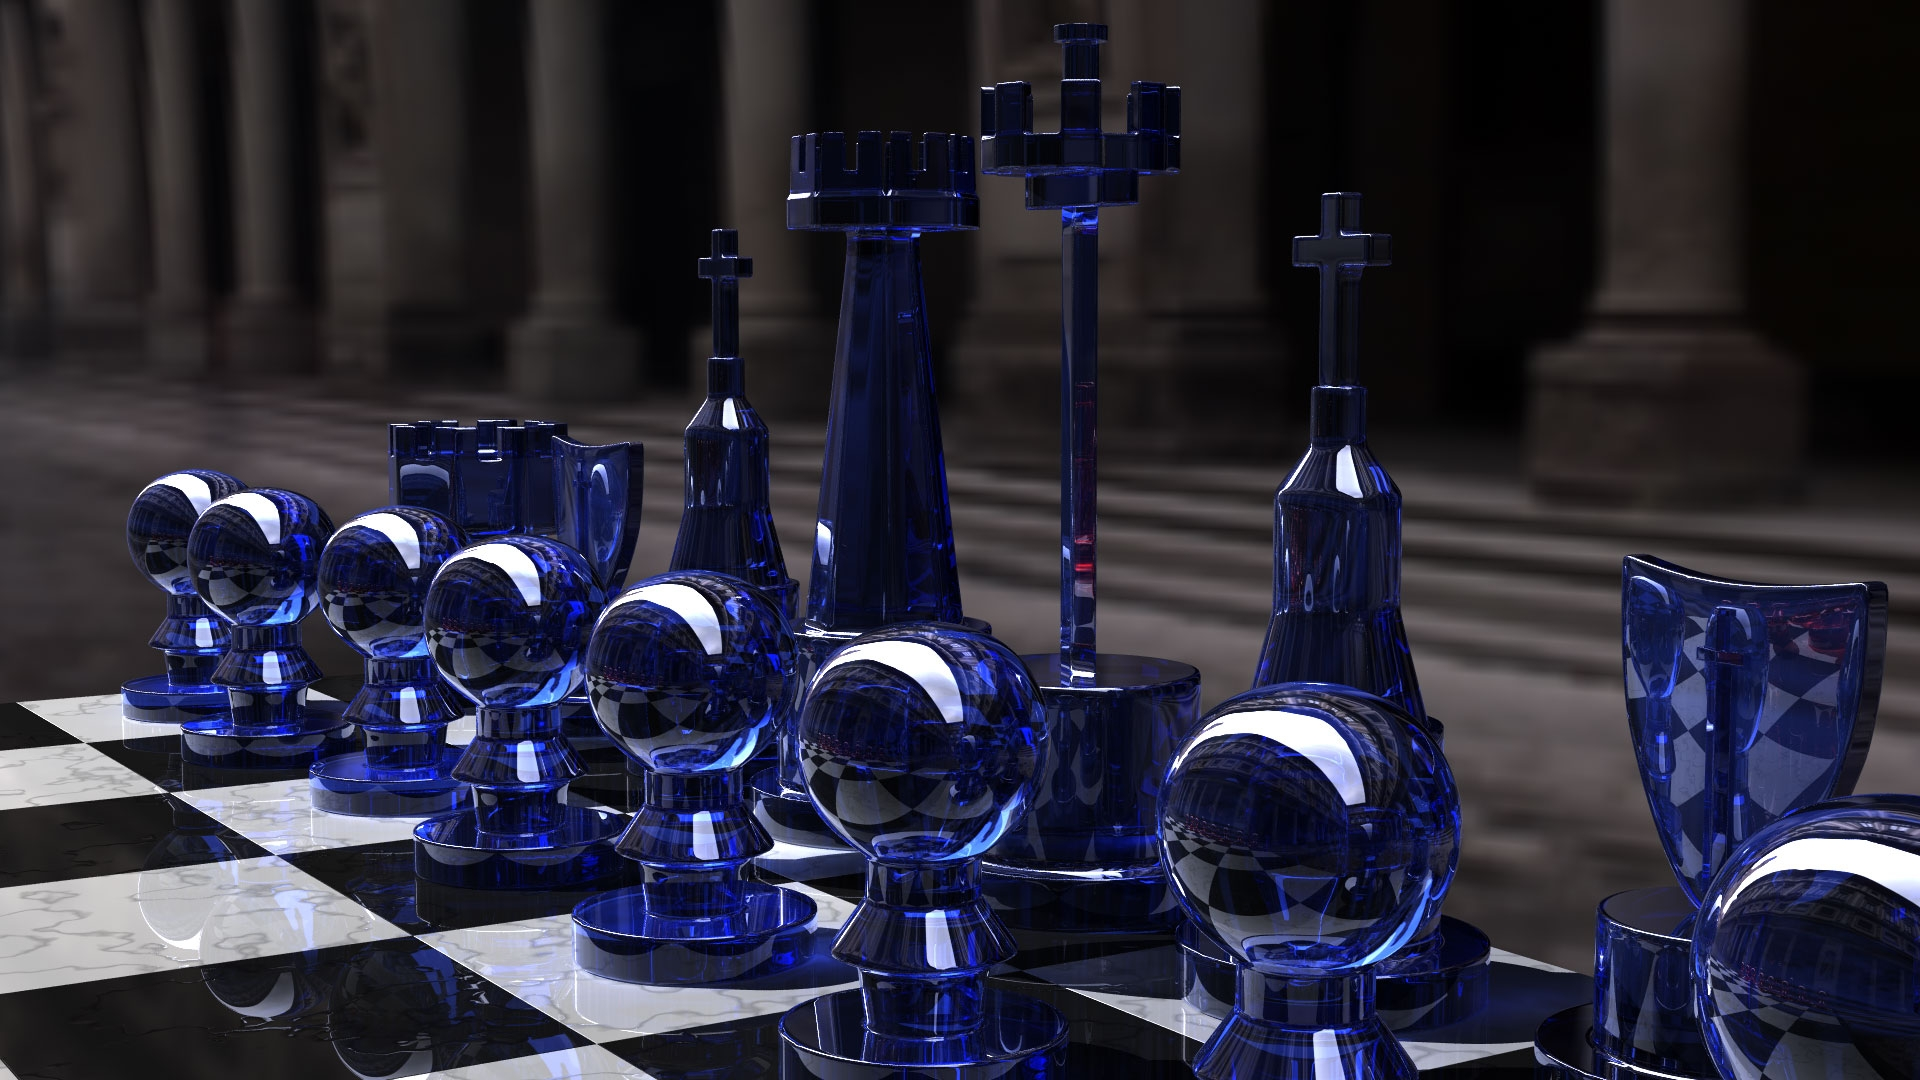 chess board on table hd wallpaper hd latest wallpapers